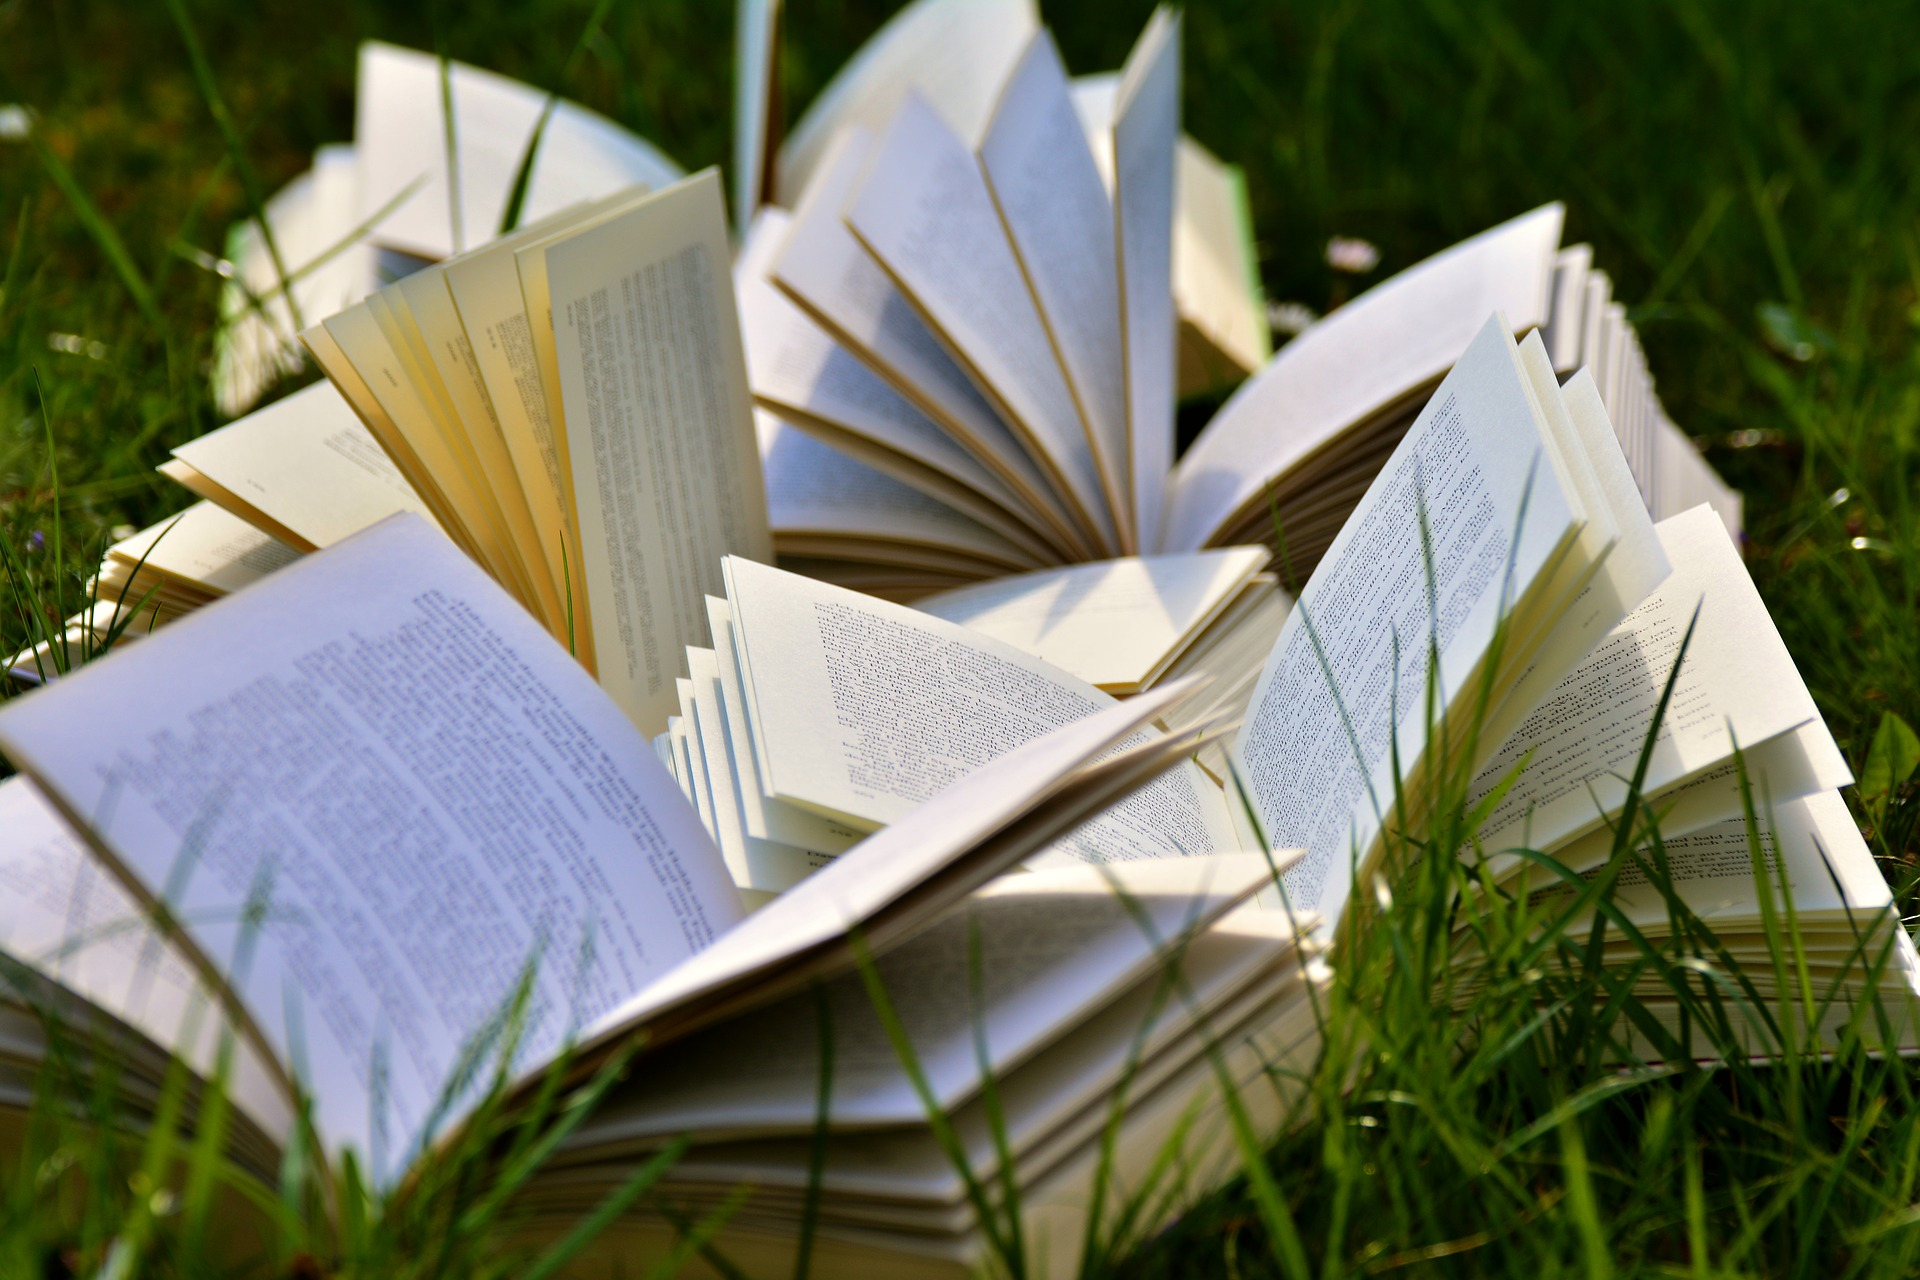 """"""" Books, book pages, pitched, read... """" by  congerdesign  is  Public Domain ."""